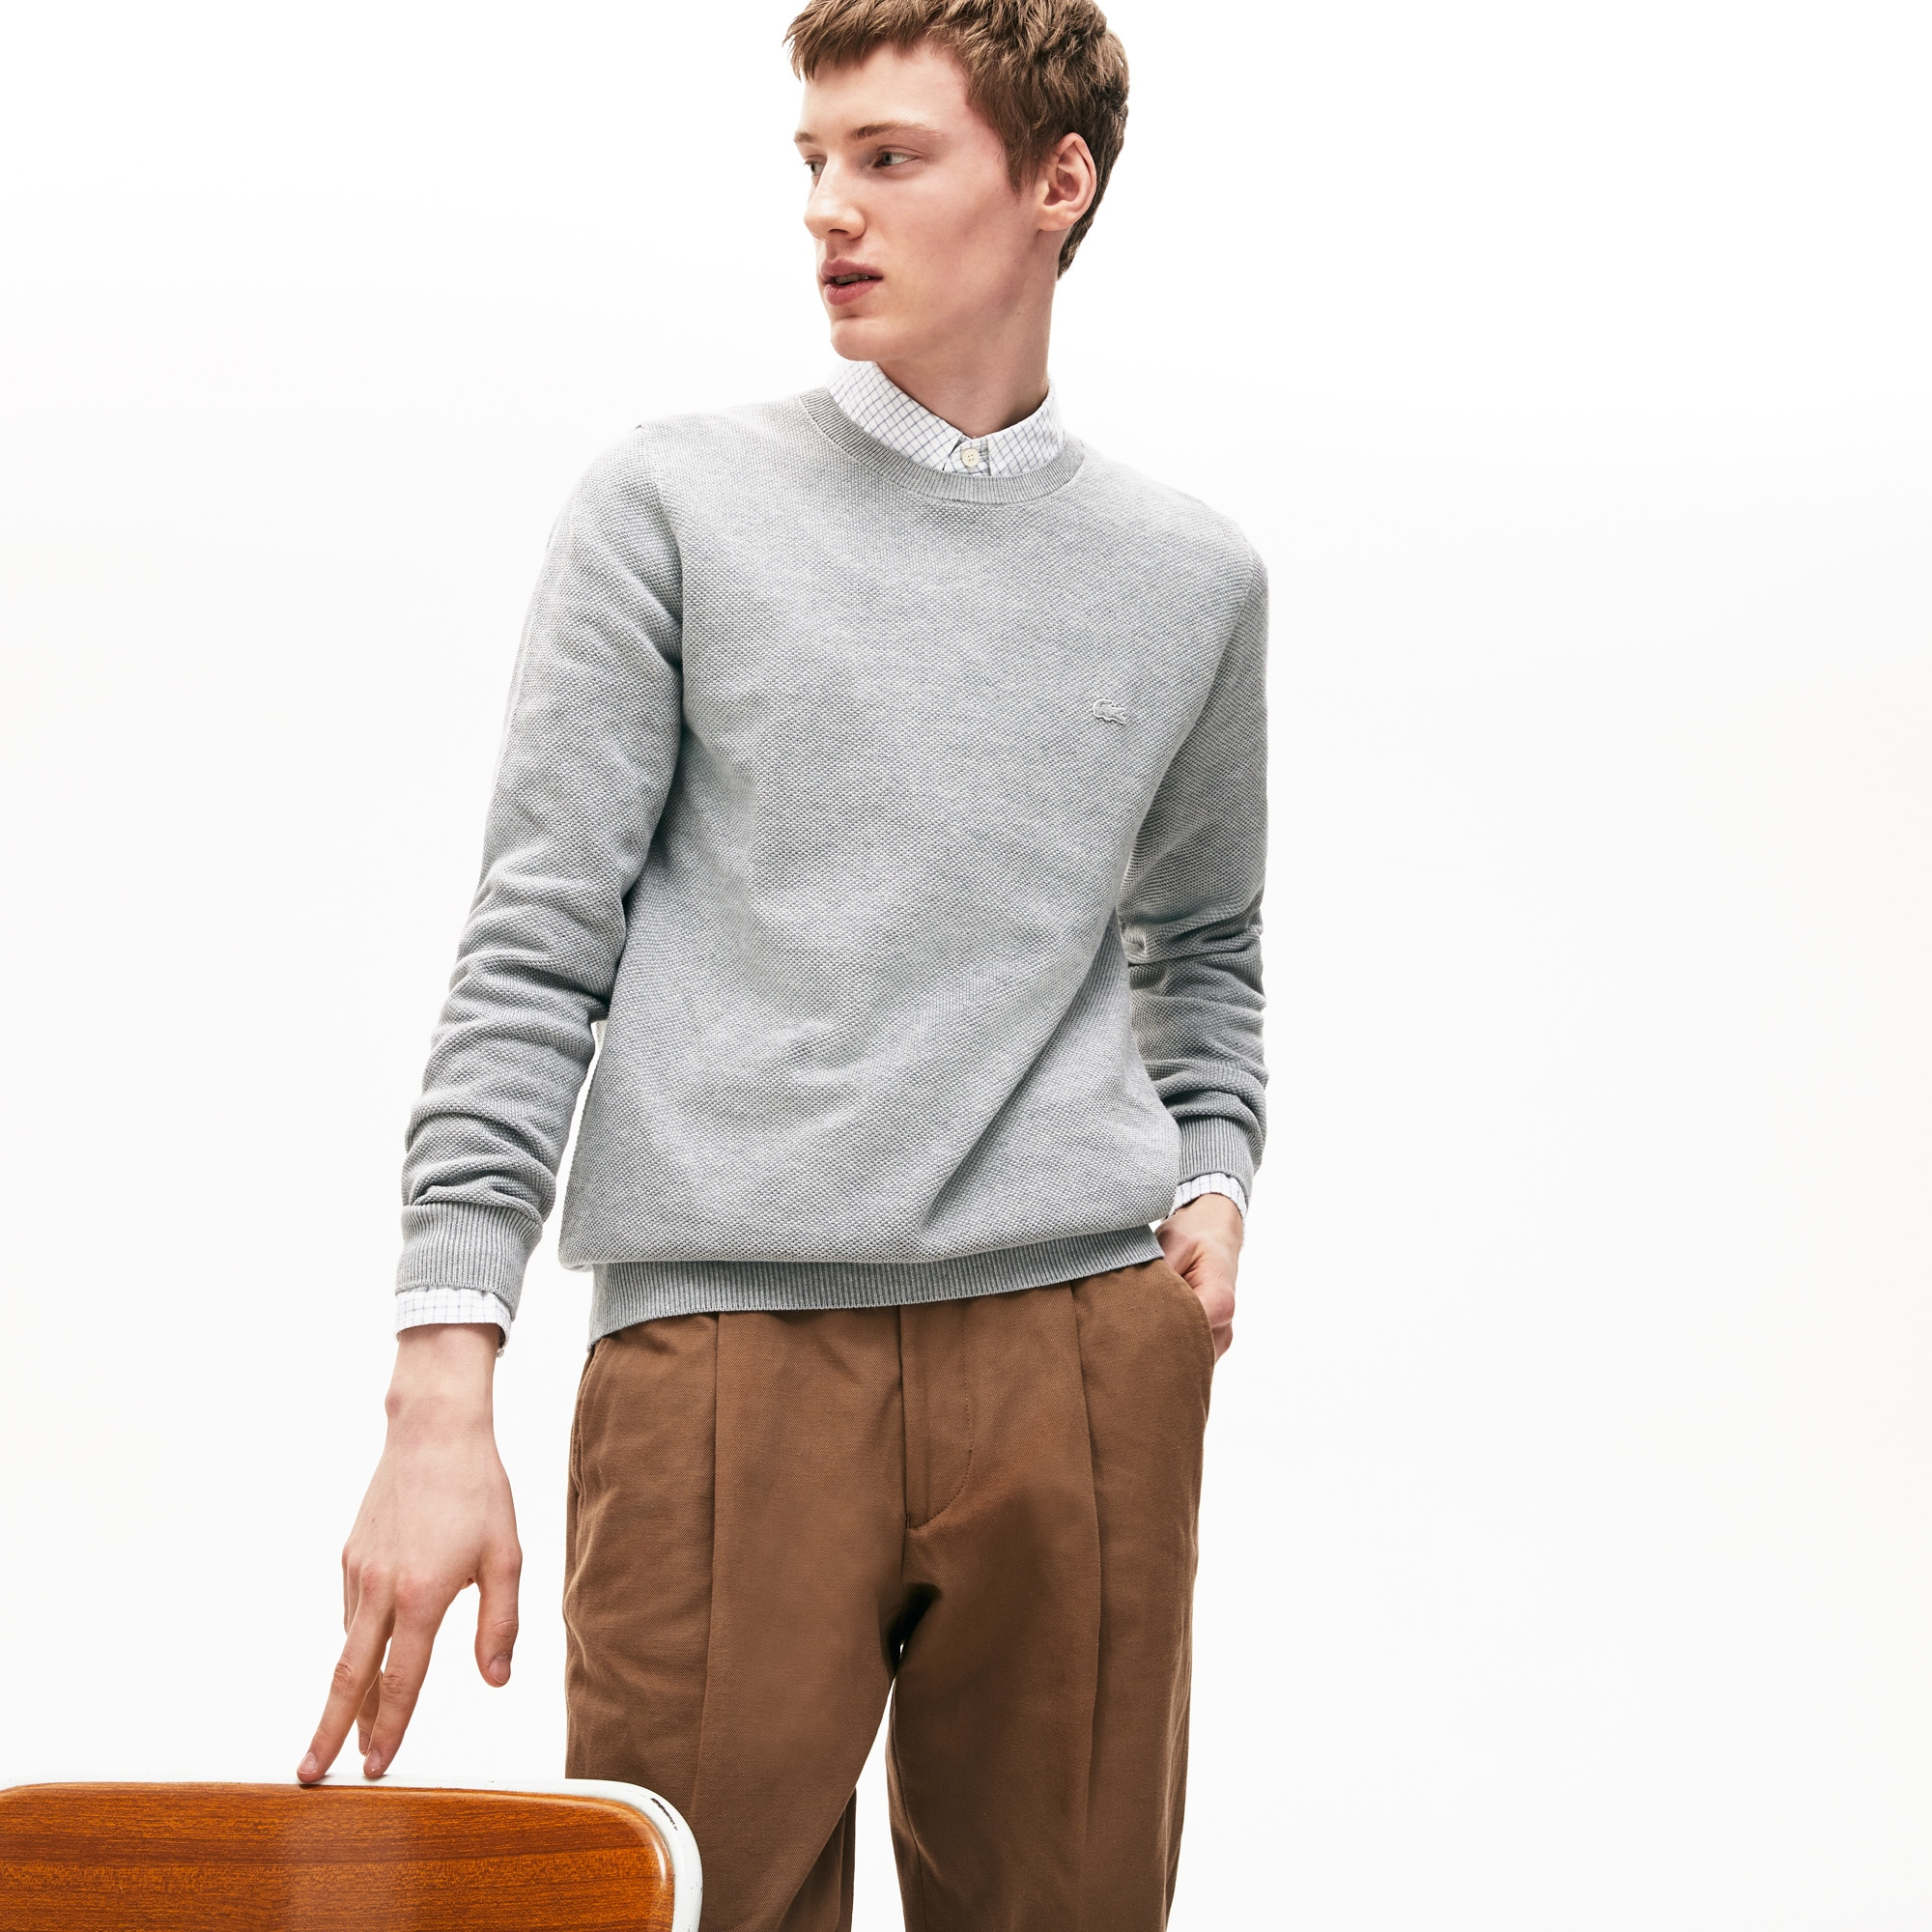 Men's Crew Neck Cotton Piqué Sweater